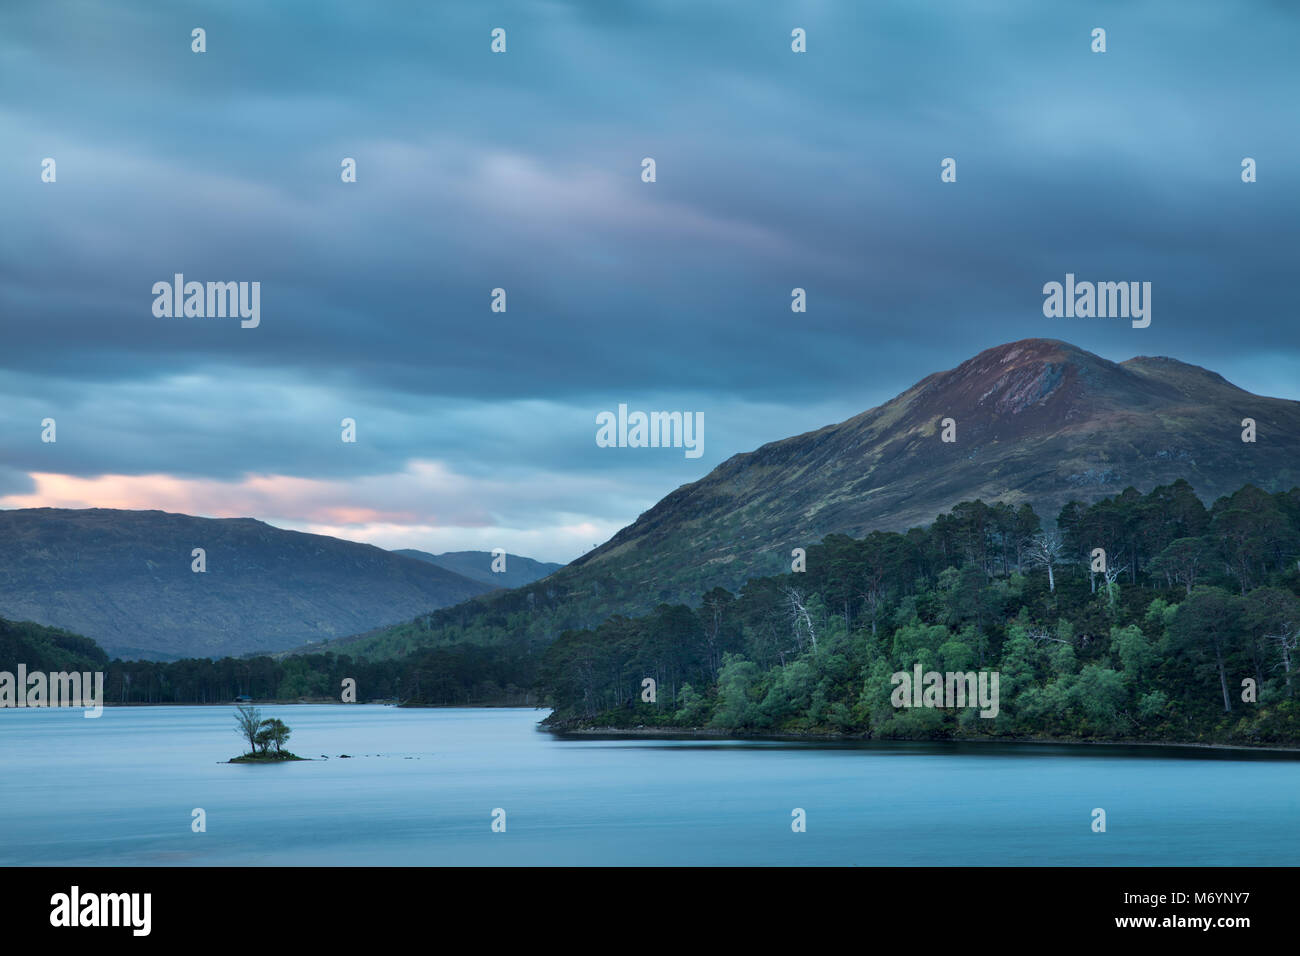 Dawn breaking over Loch Clair, Wester Ross, Scotland, UK - Stock Image